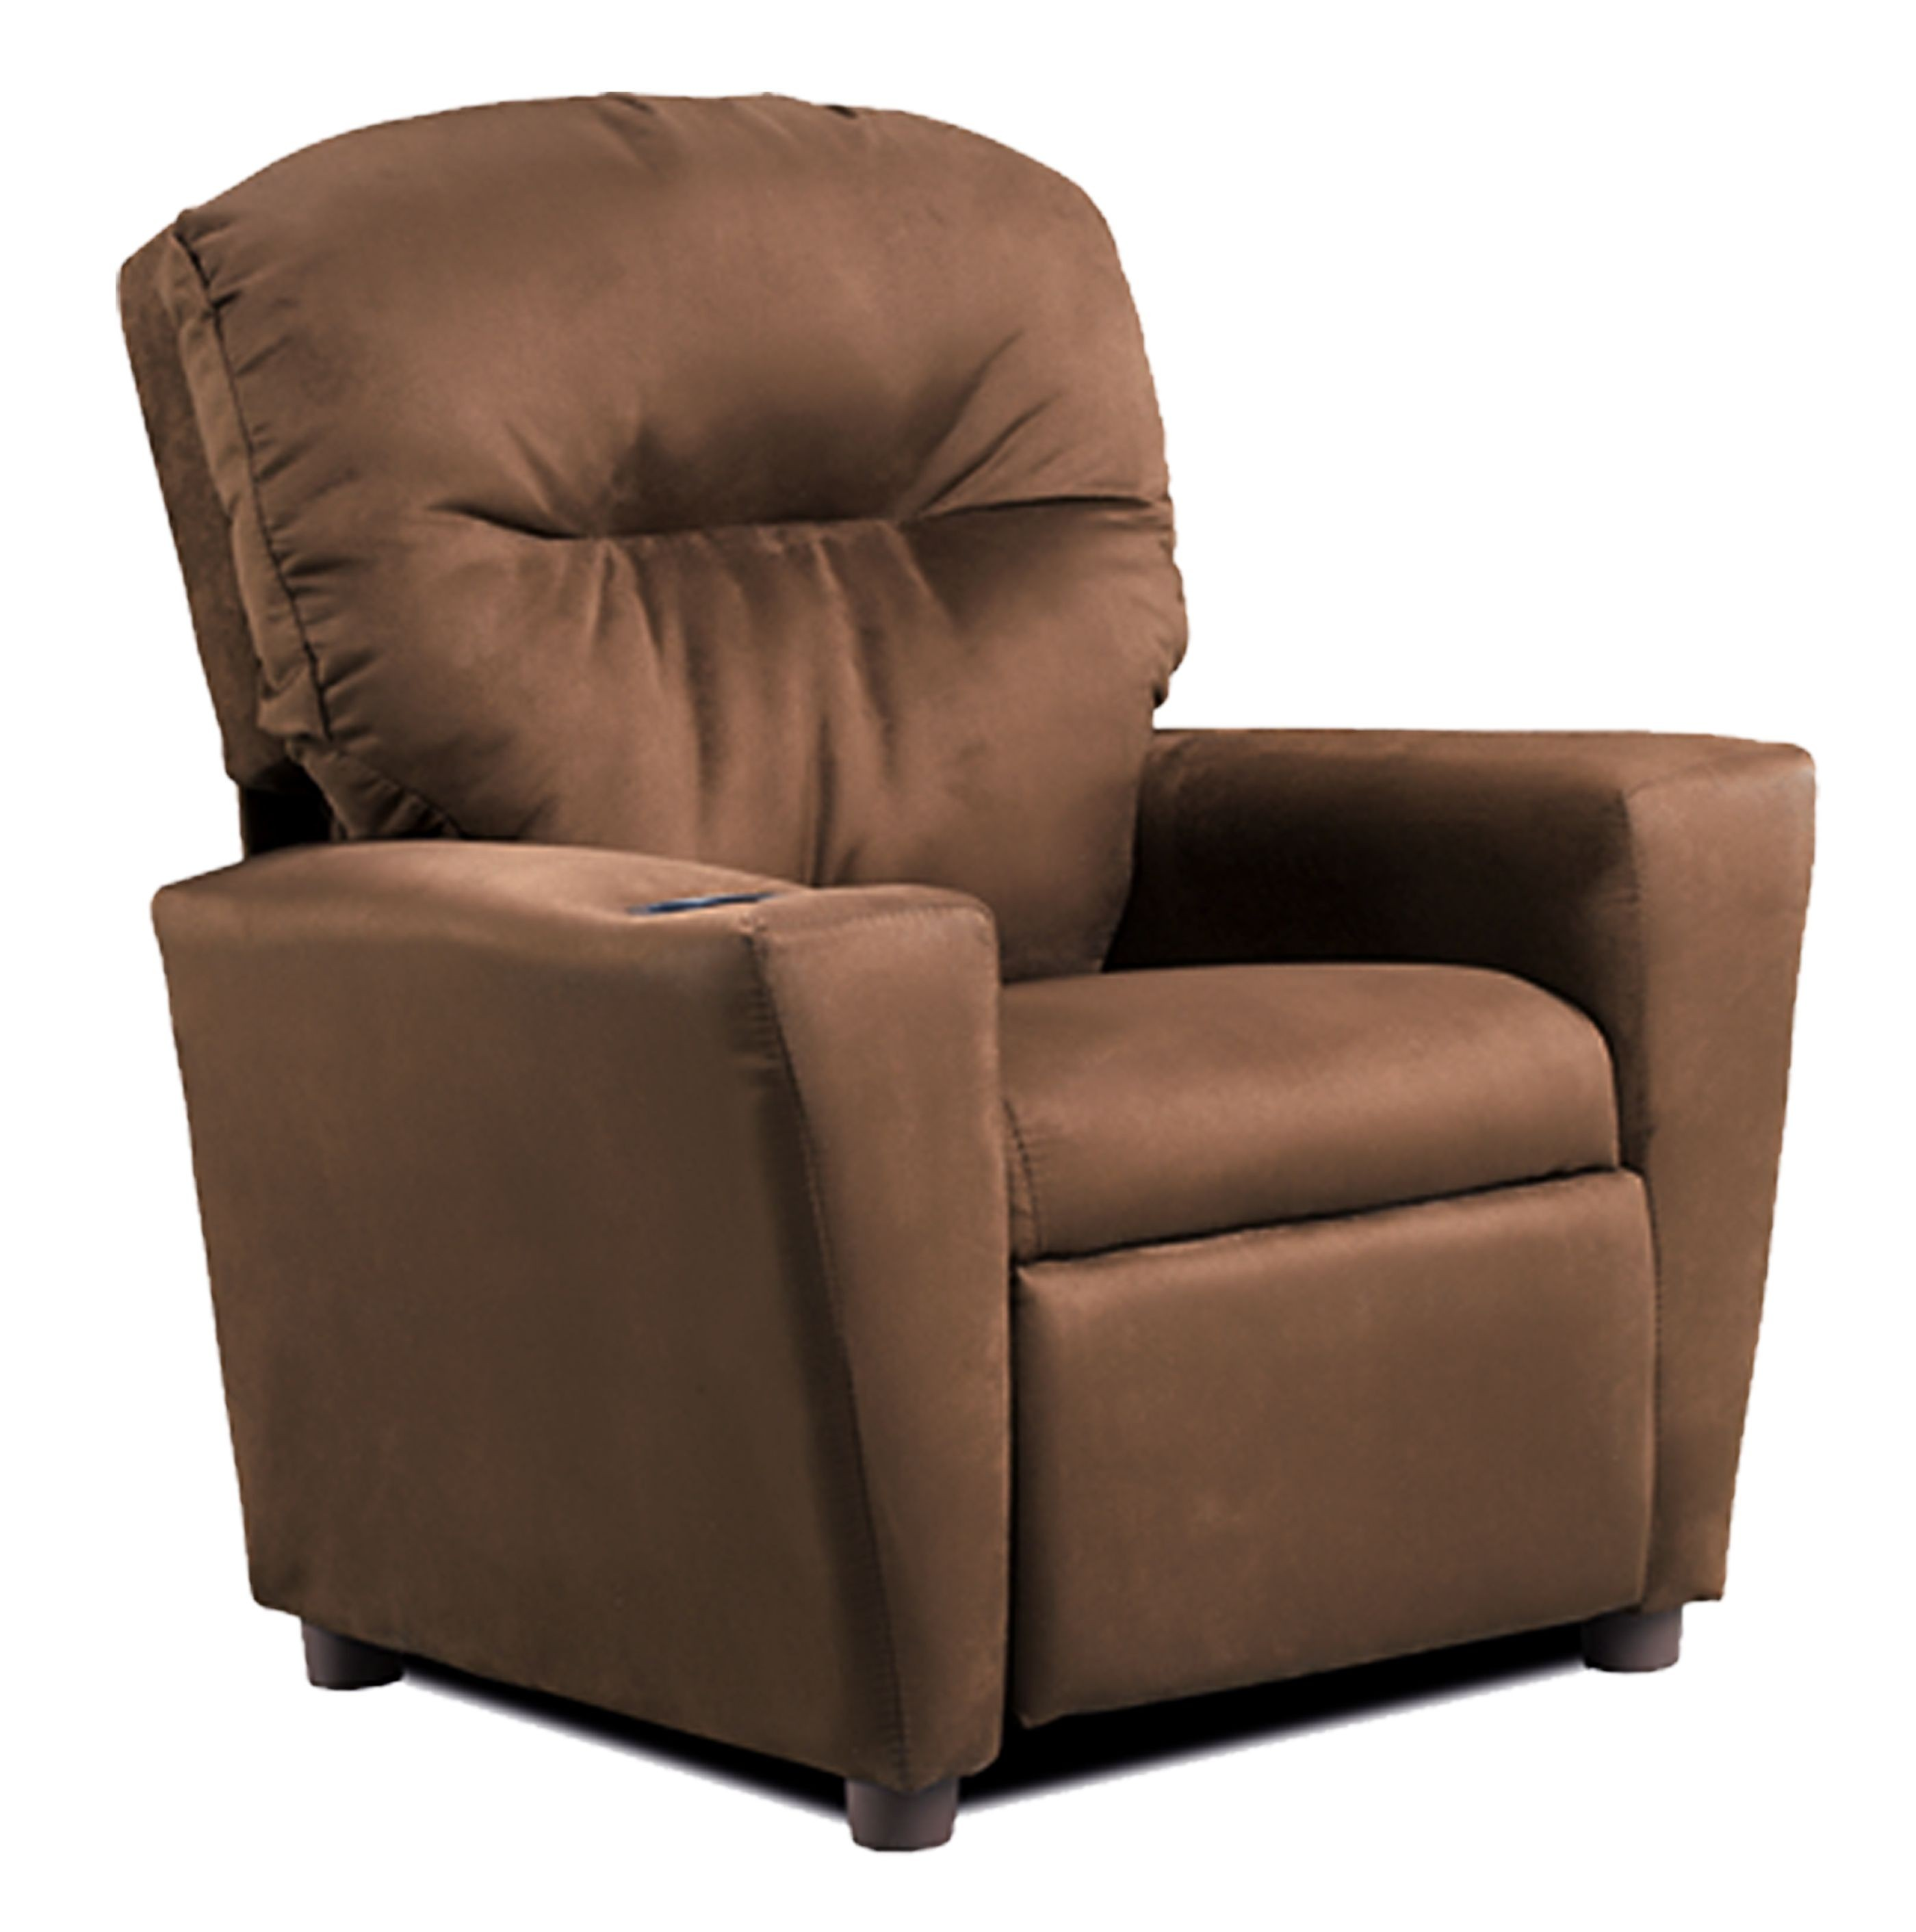 Kids Reclining Chair Chocolate Quotsuede Quot Kid 39s Recliner From Kidz World 1300 1